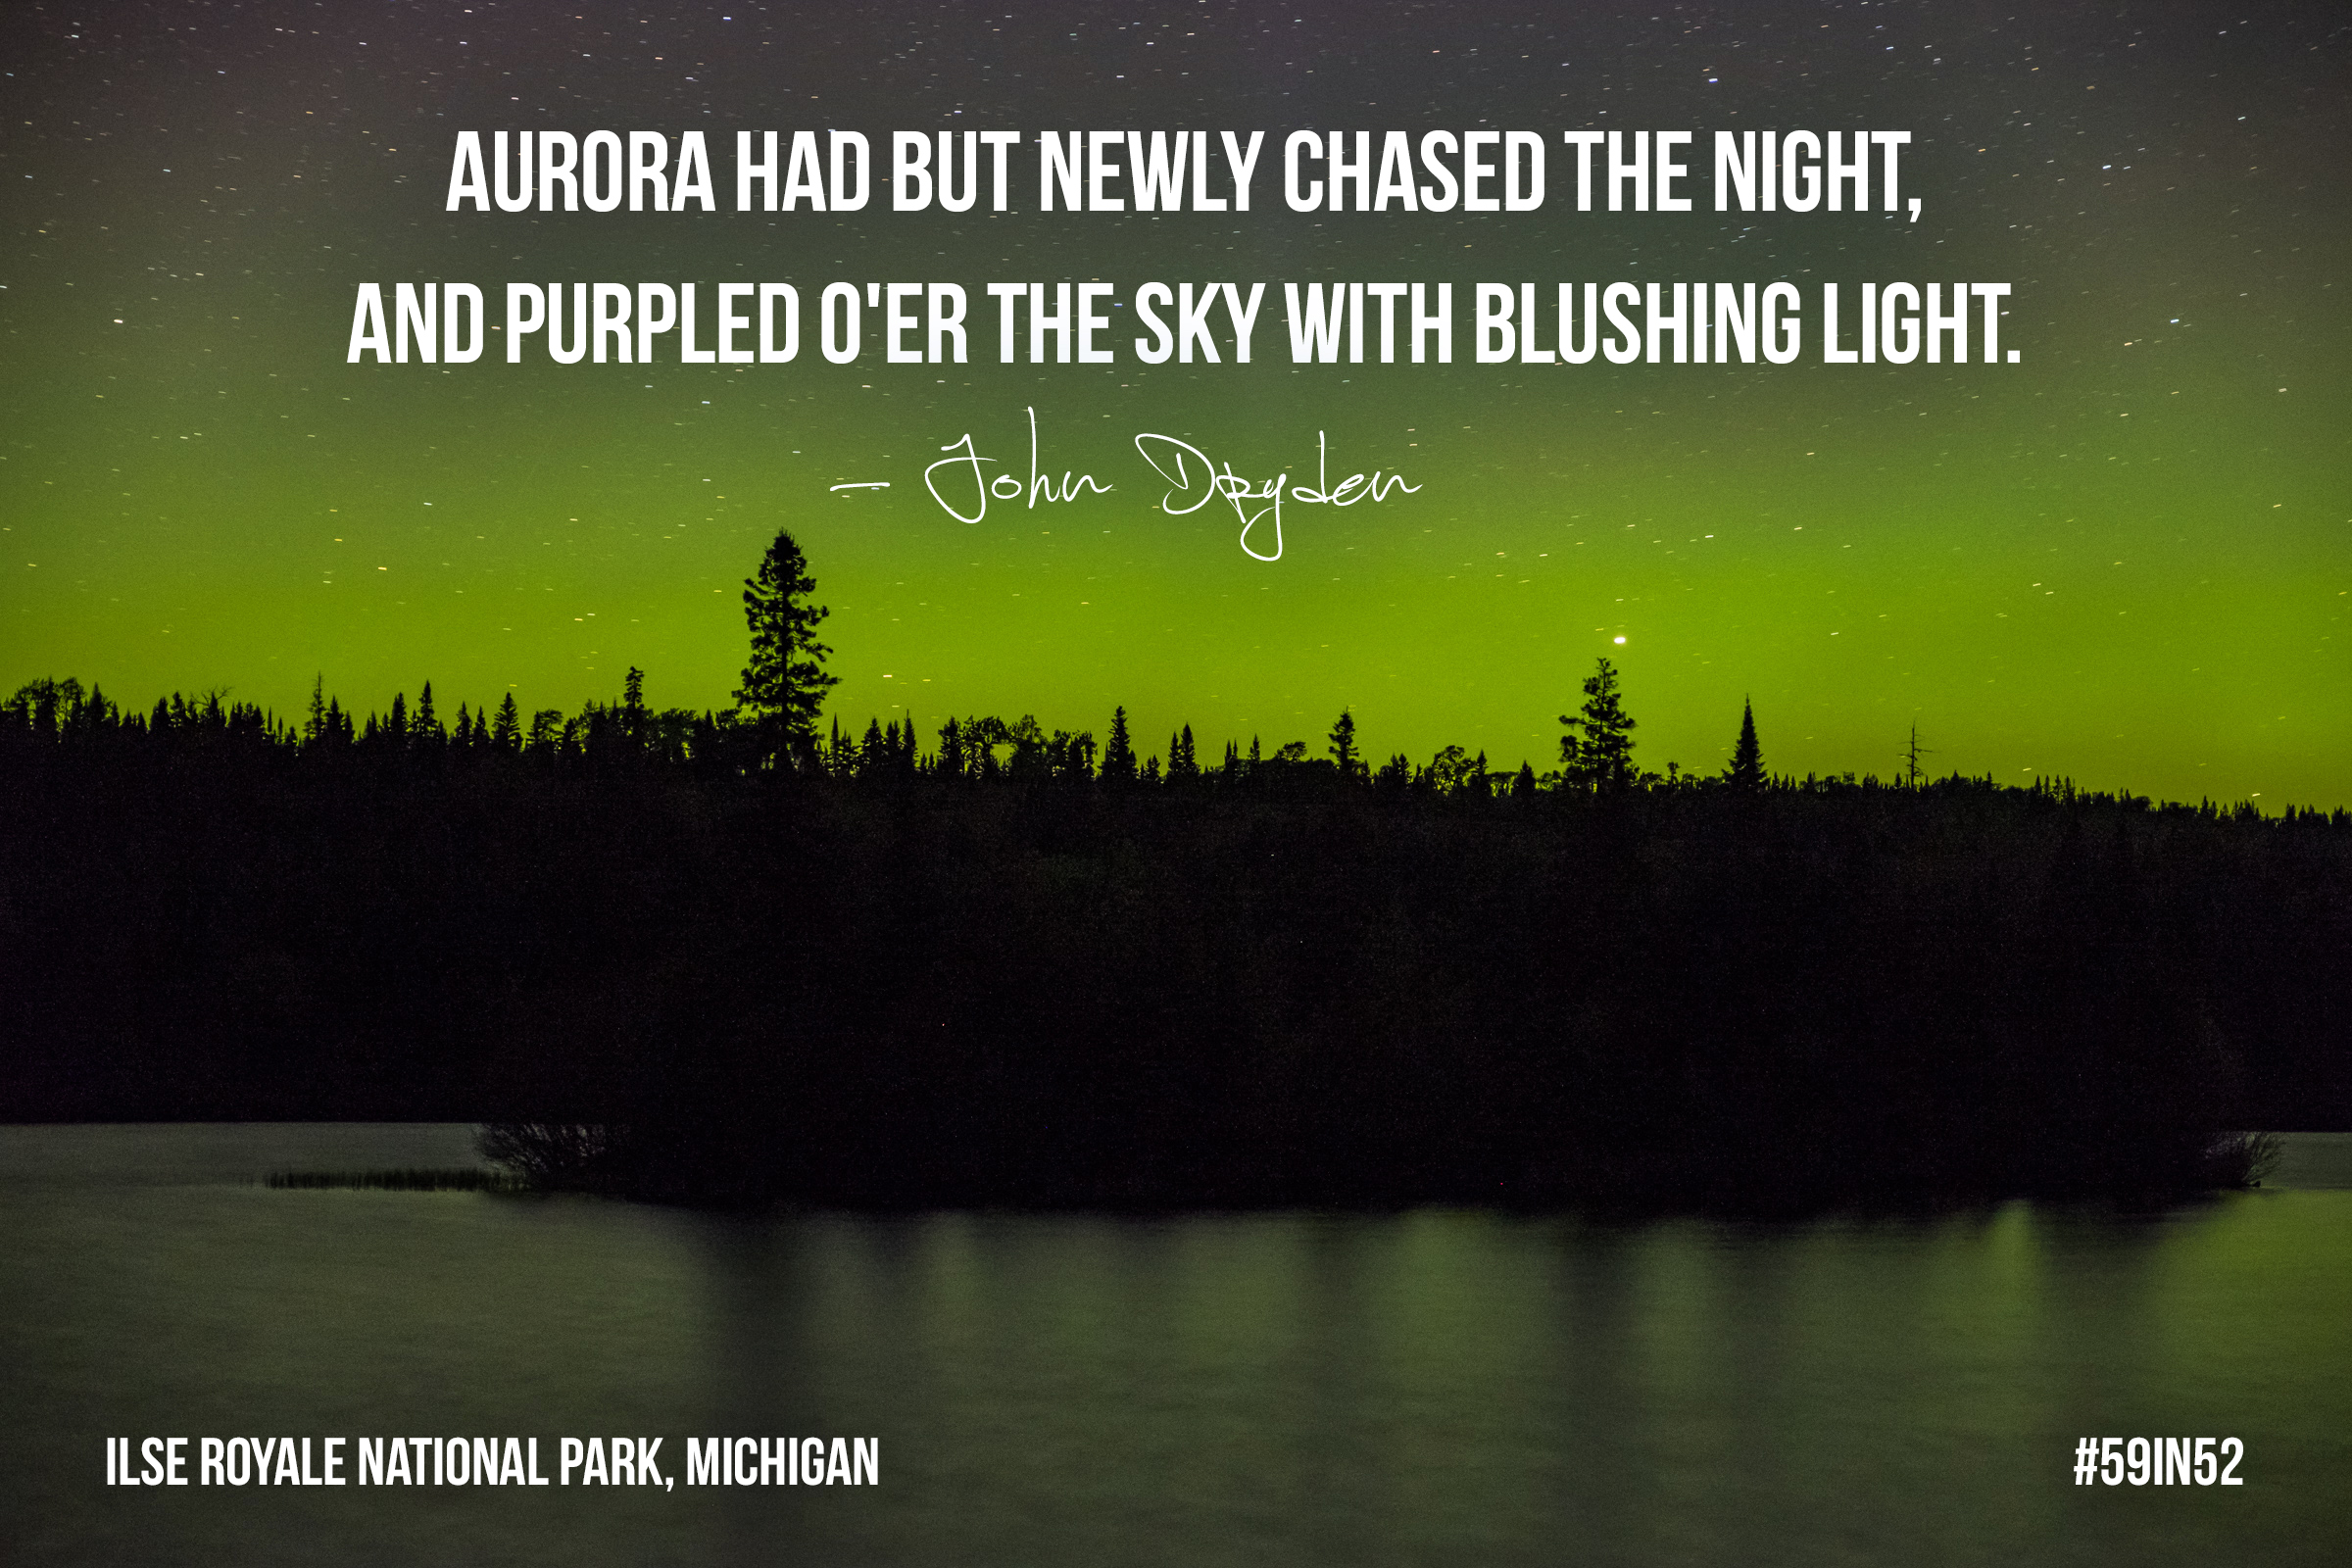 """Aurora had but newly chased the night, And purpled o'er the sky with blushing light."" - John Dryden"